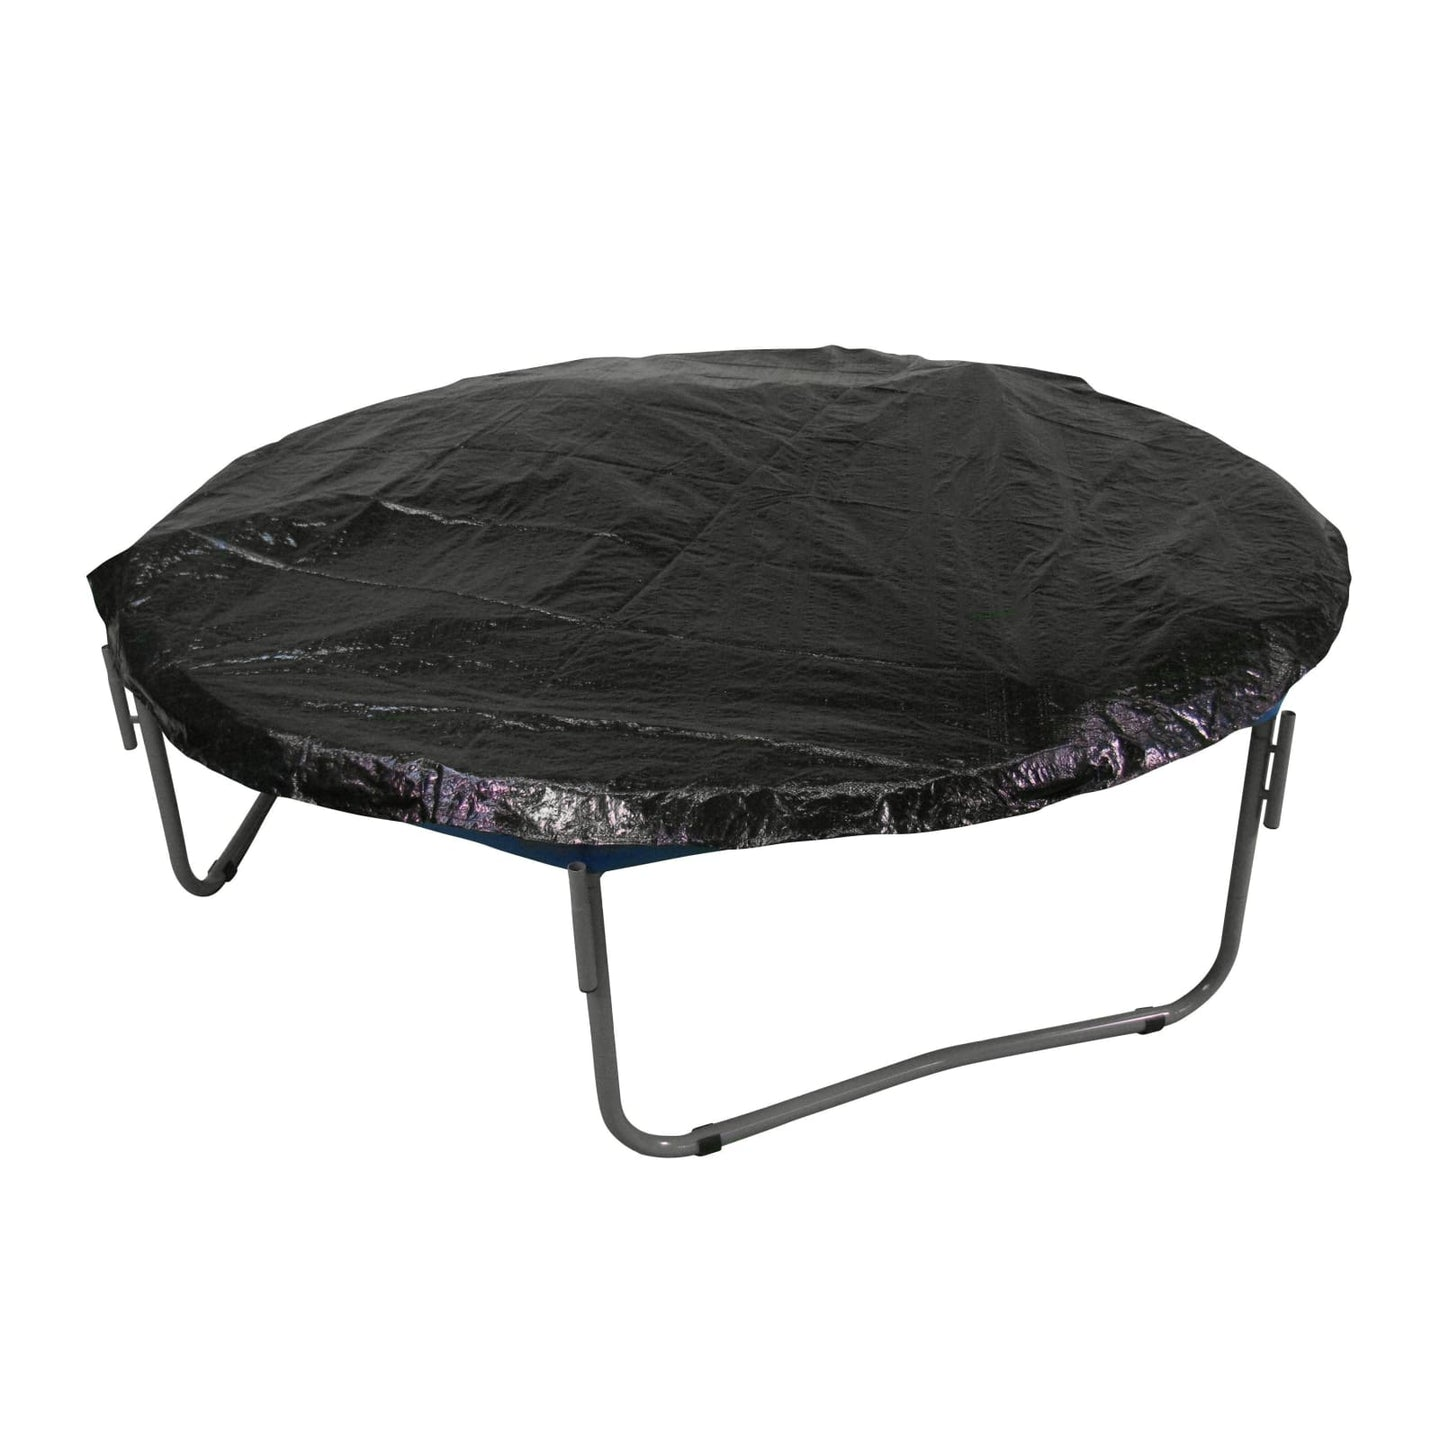 Upper Bounce Economy Trampoline Weather Protection Cover Fits For 7.5 Ft. Round Frames-Black - Trampoline Accessories